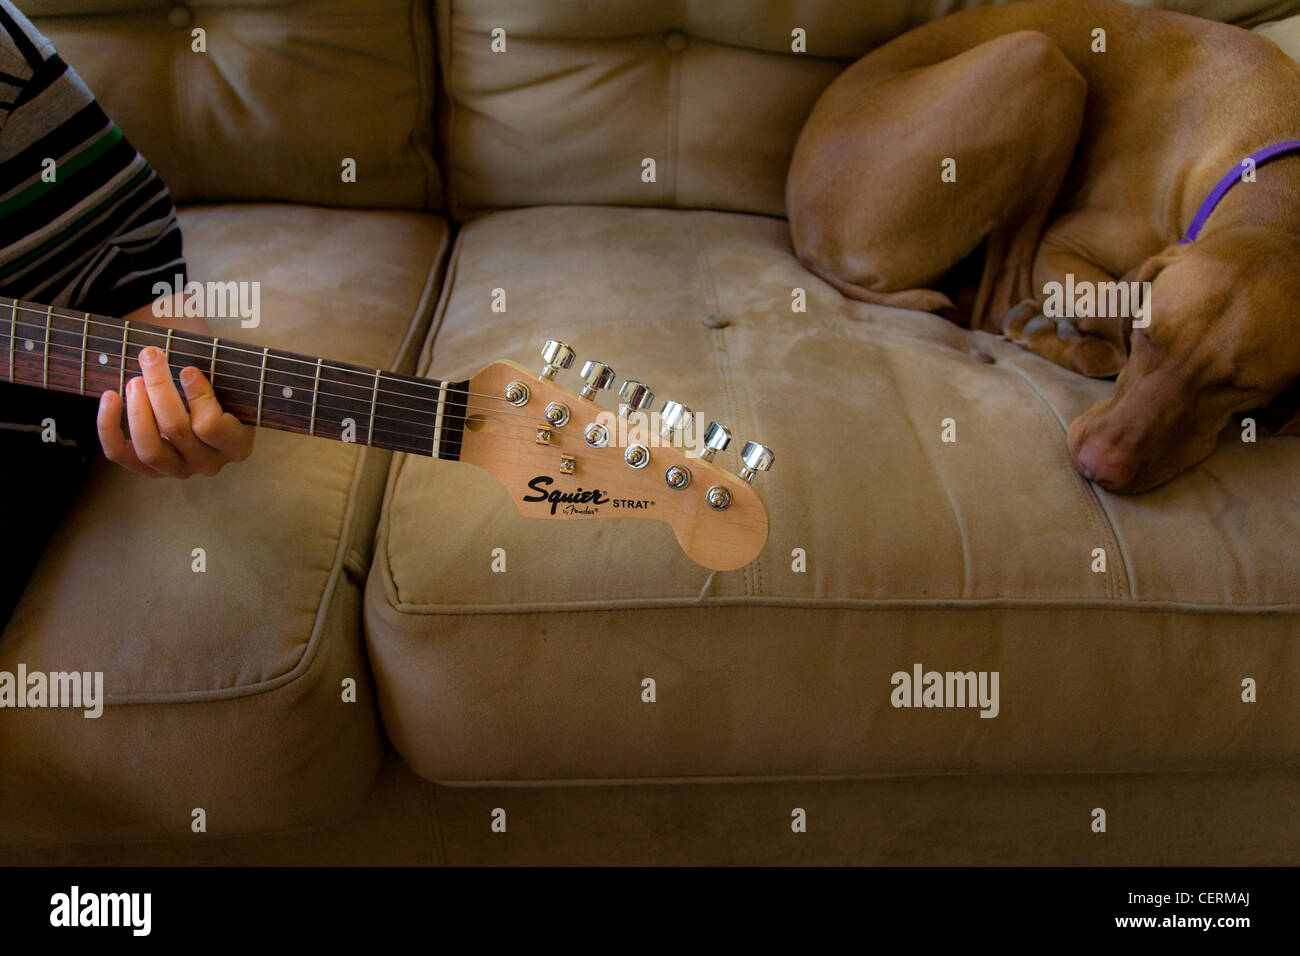 Boy playing his guitar while his dog sleeps next to him - Stock Image